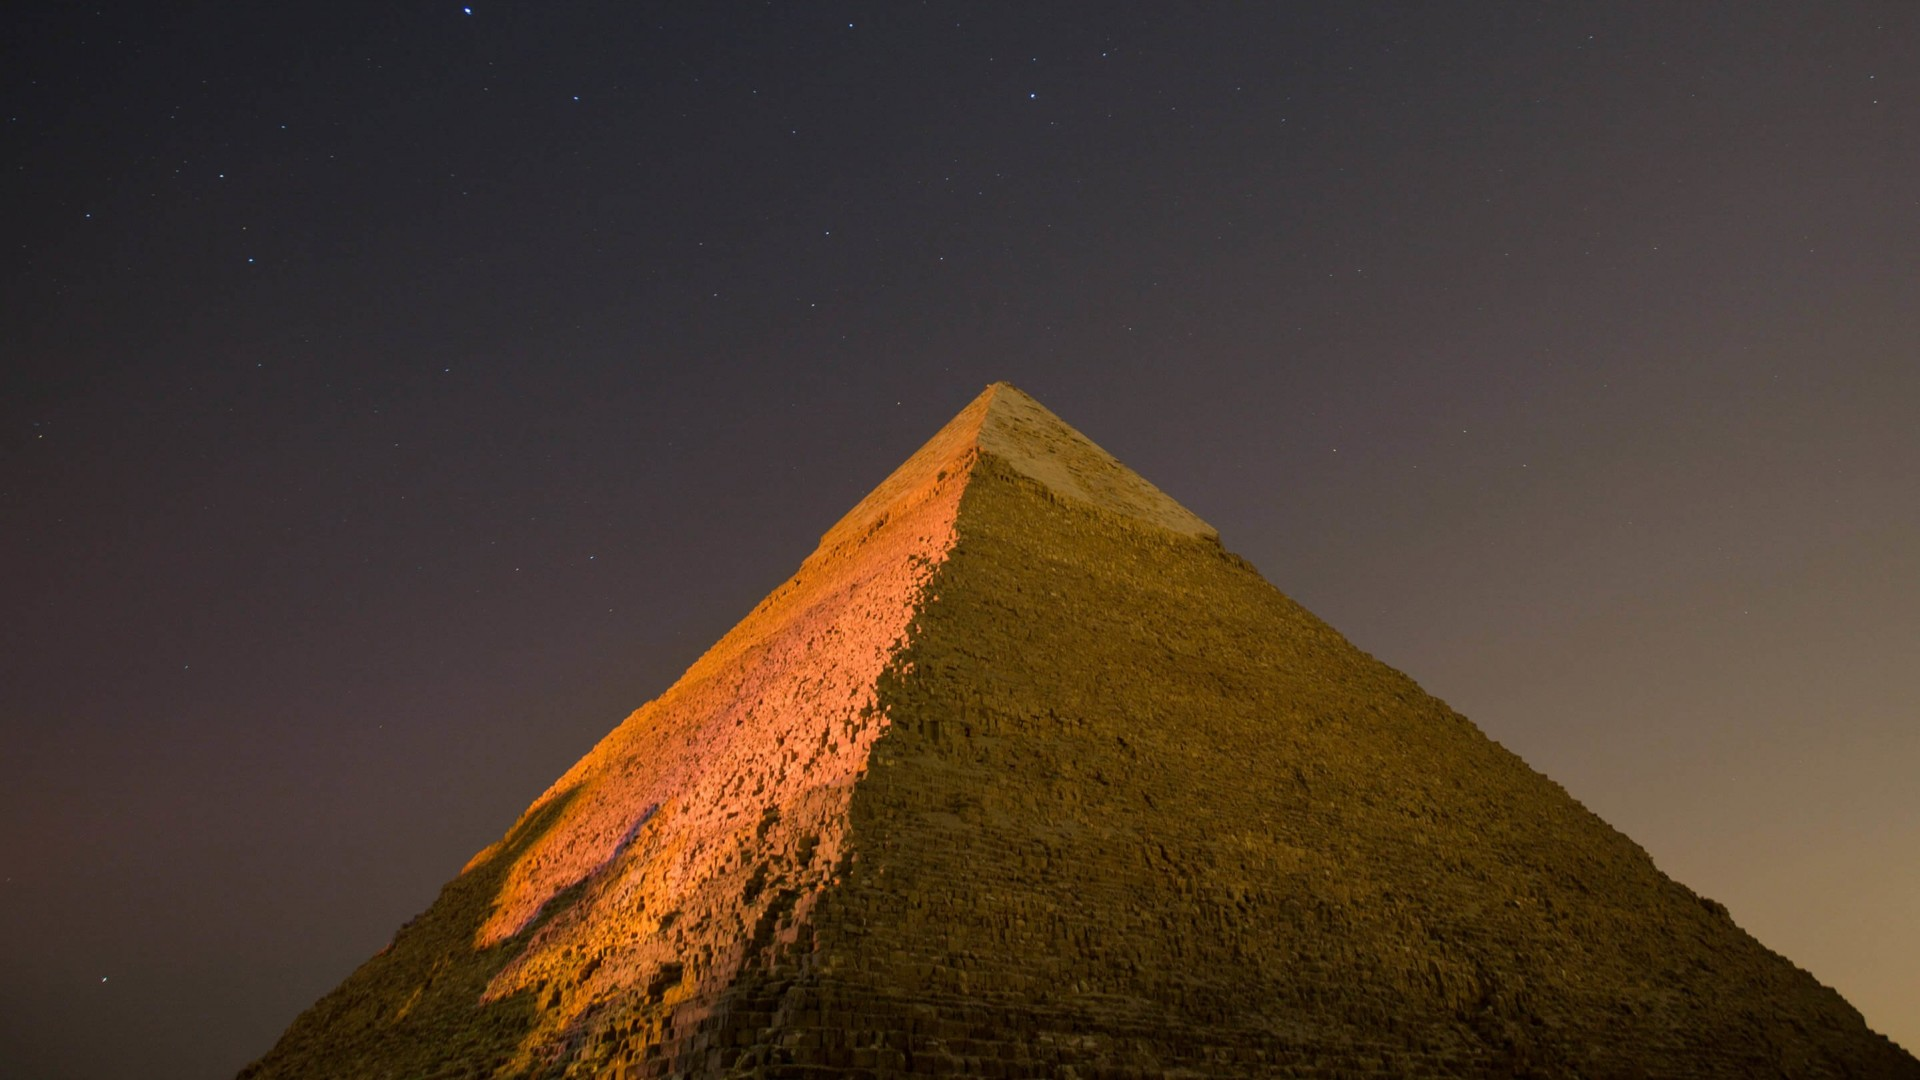 Pyramid by Night Wallpaper for Desktop 1920x1080